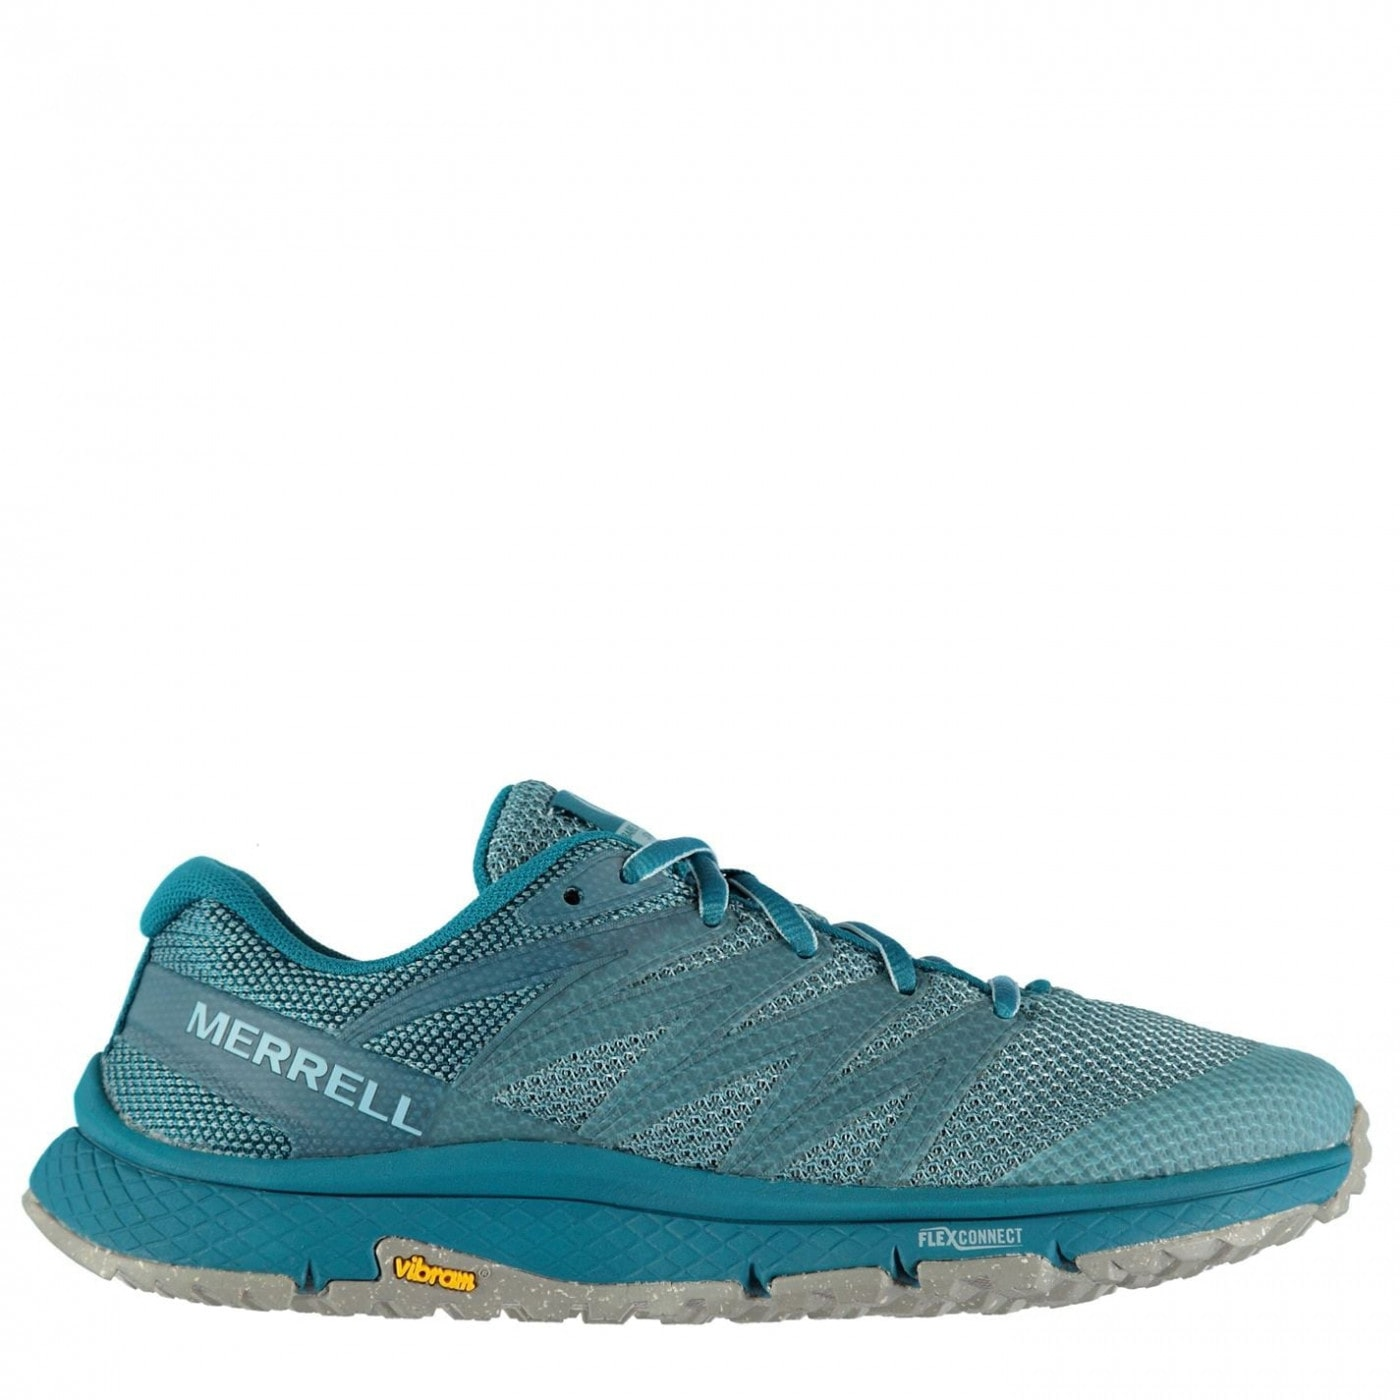 Merrell Bare Access XTR Eco Shoes Womens